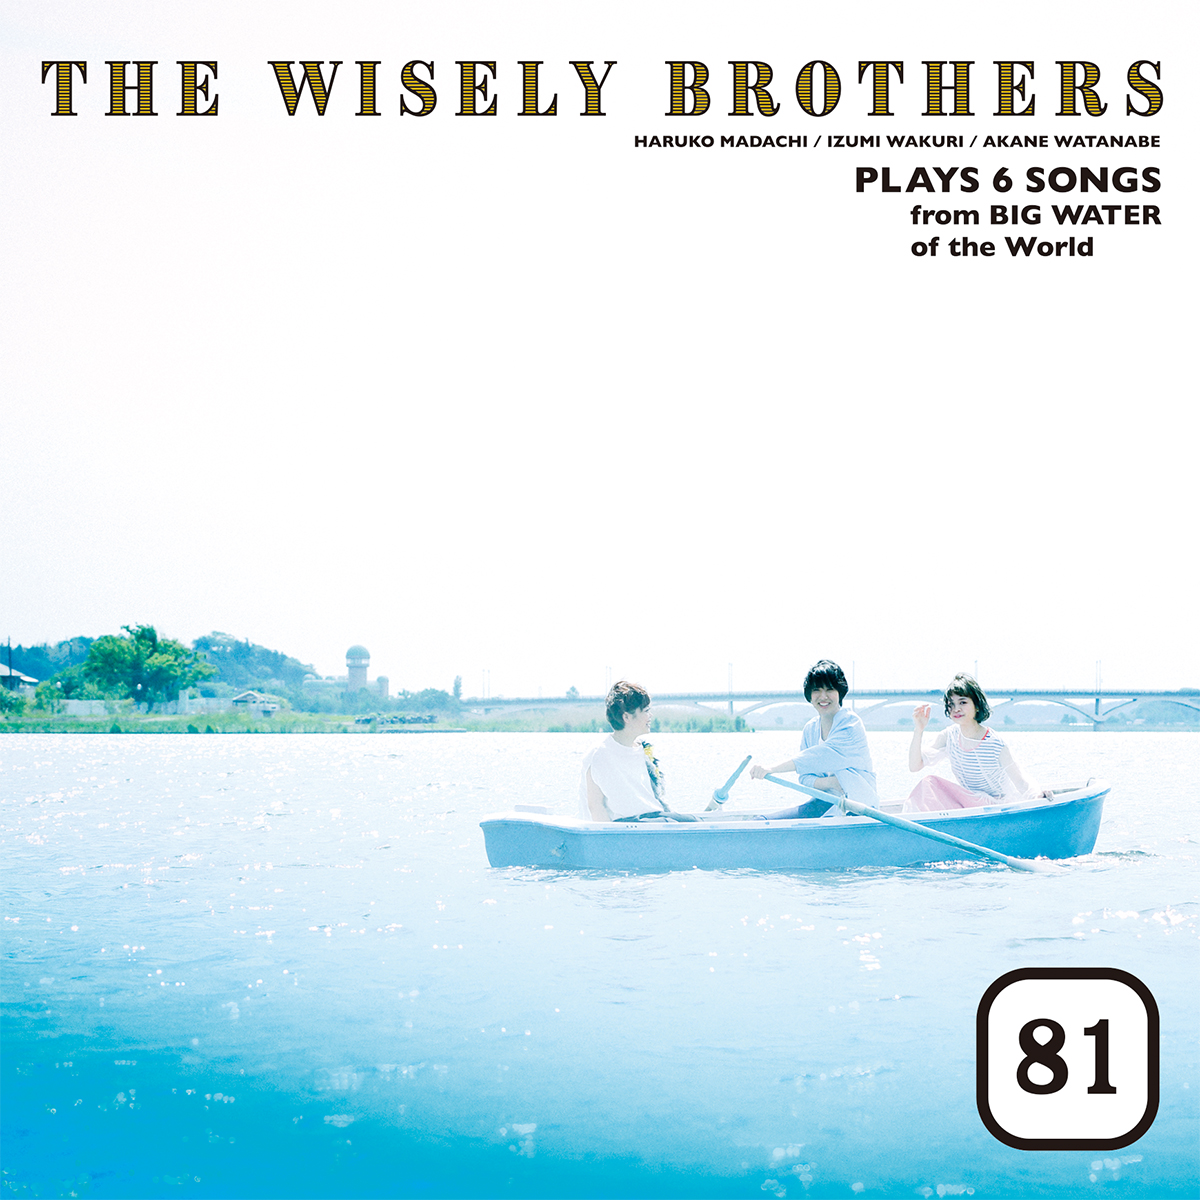 The Wisely Brothers_シーサイド81